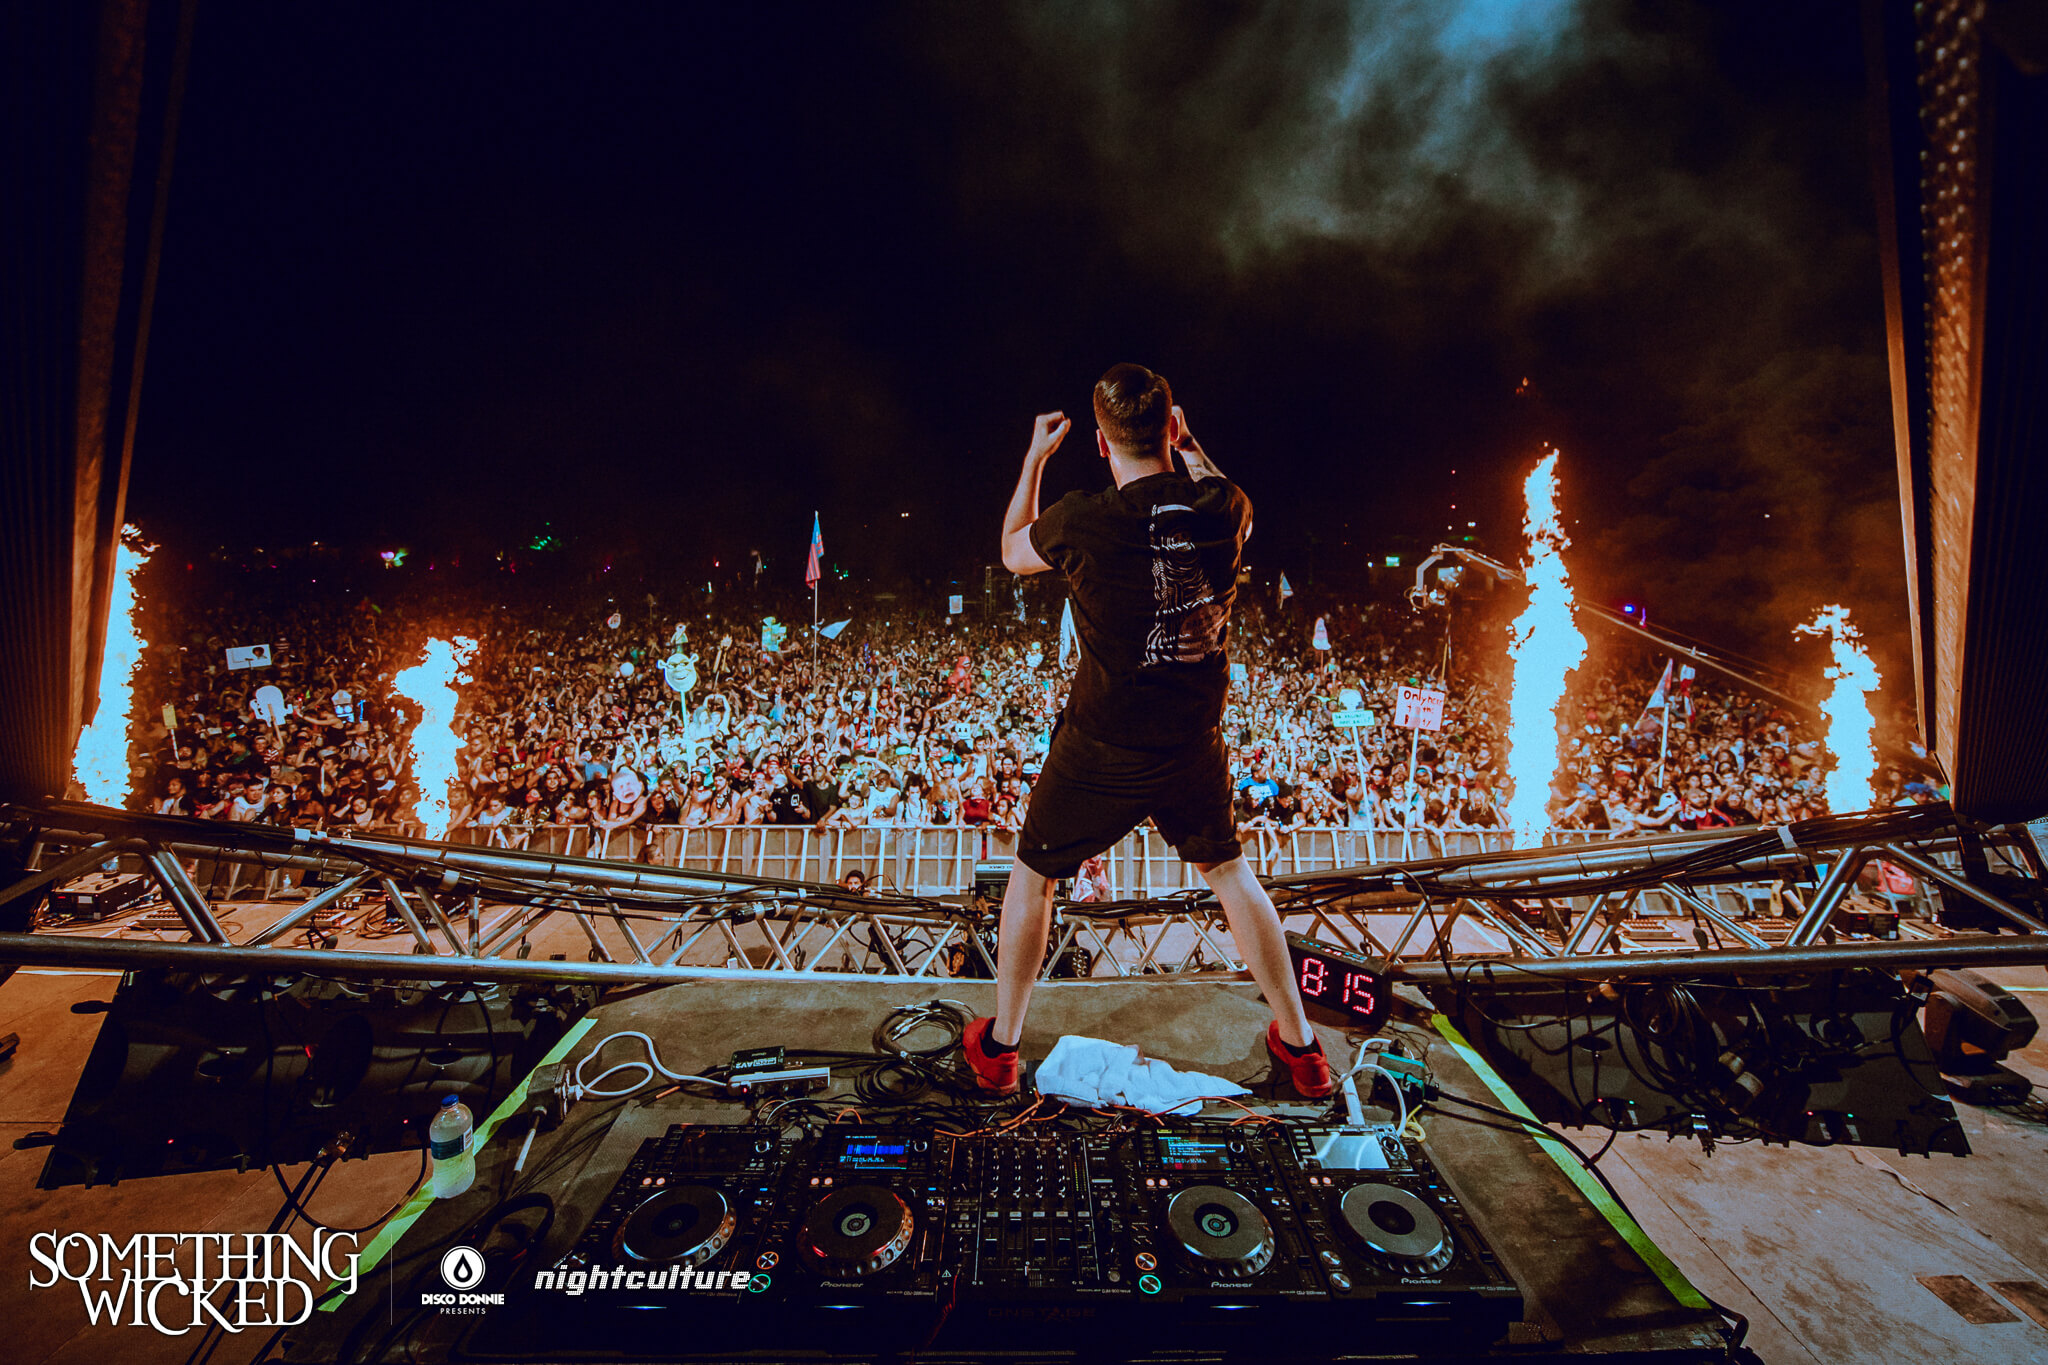 Zomboy performing at Something Wicked. Photo by Julian Bajel.